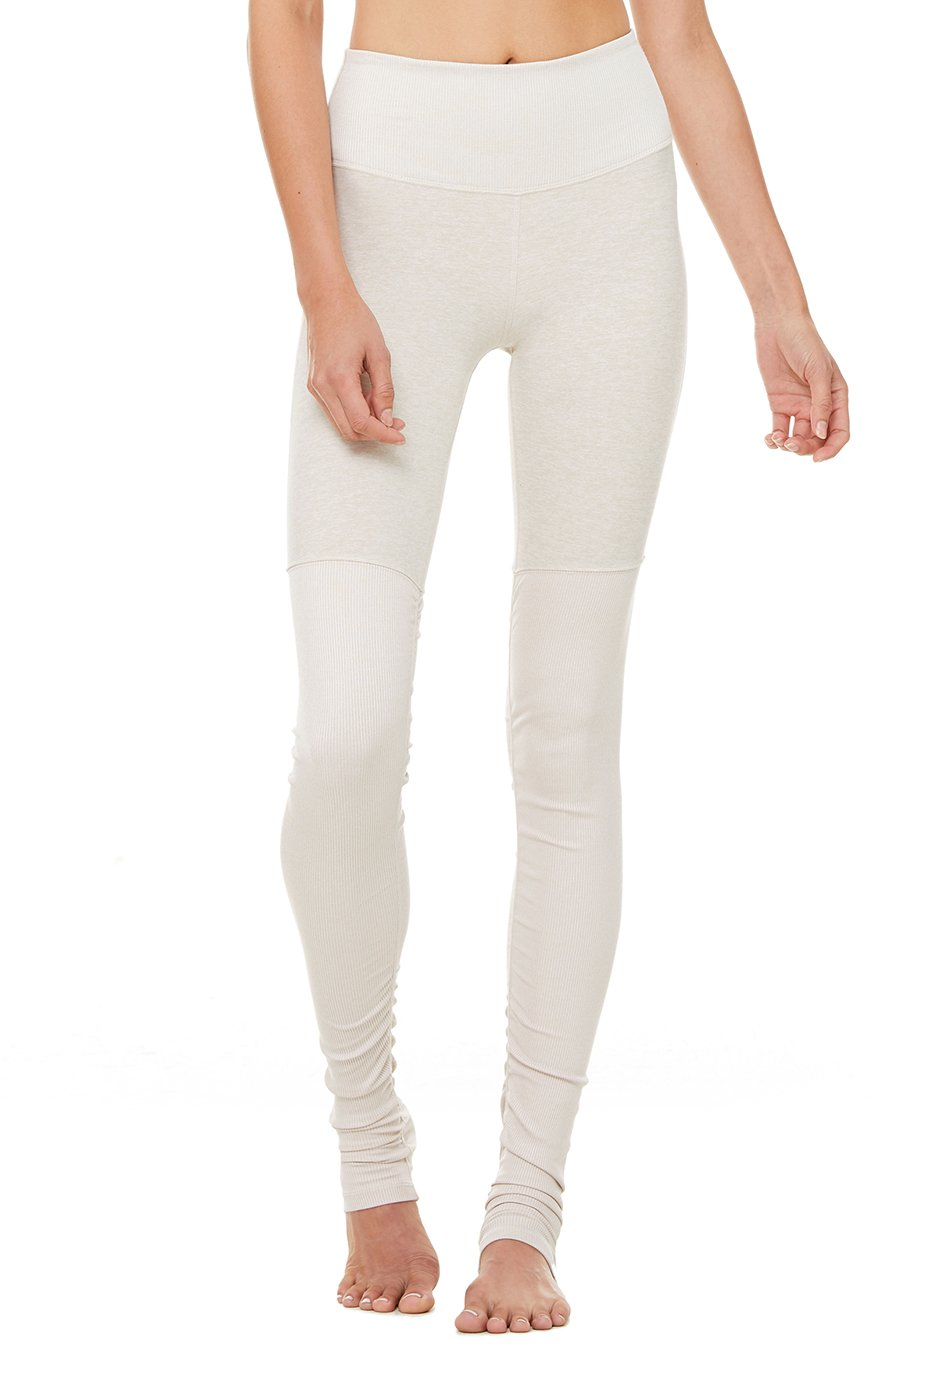 HIGH-WAIST ALOSOFT GODDESS LEGGING by Alo-Yoga, available on aloyoga.com for $102 Natasha Oakley Pants Exact Product